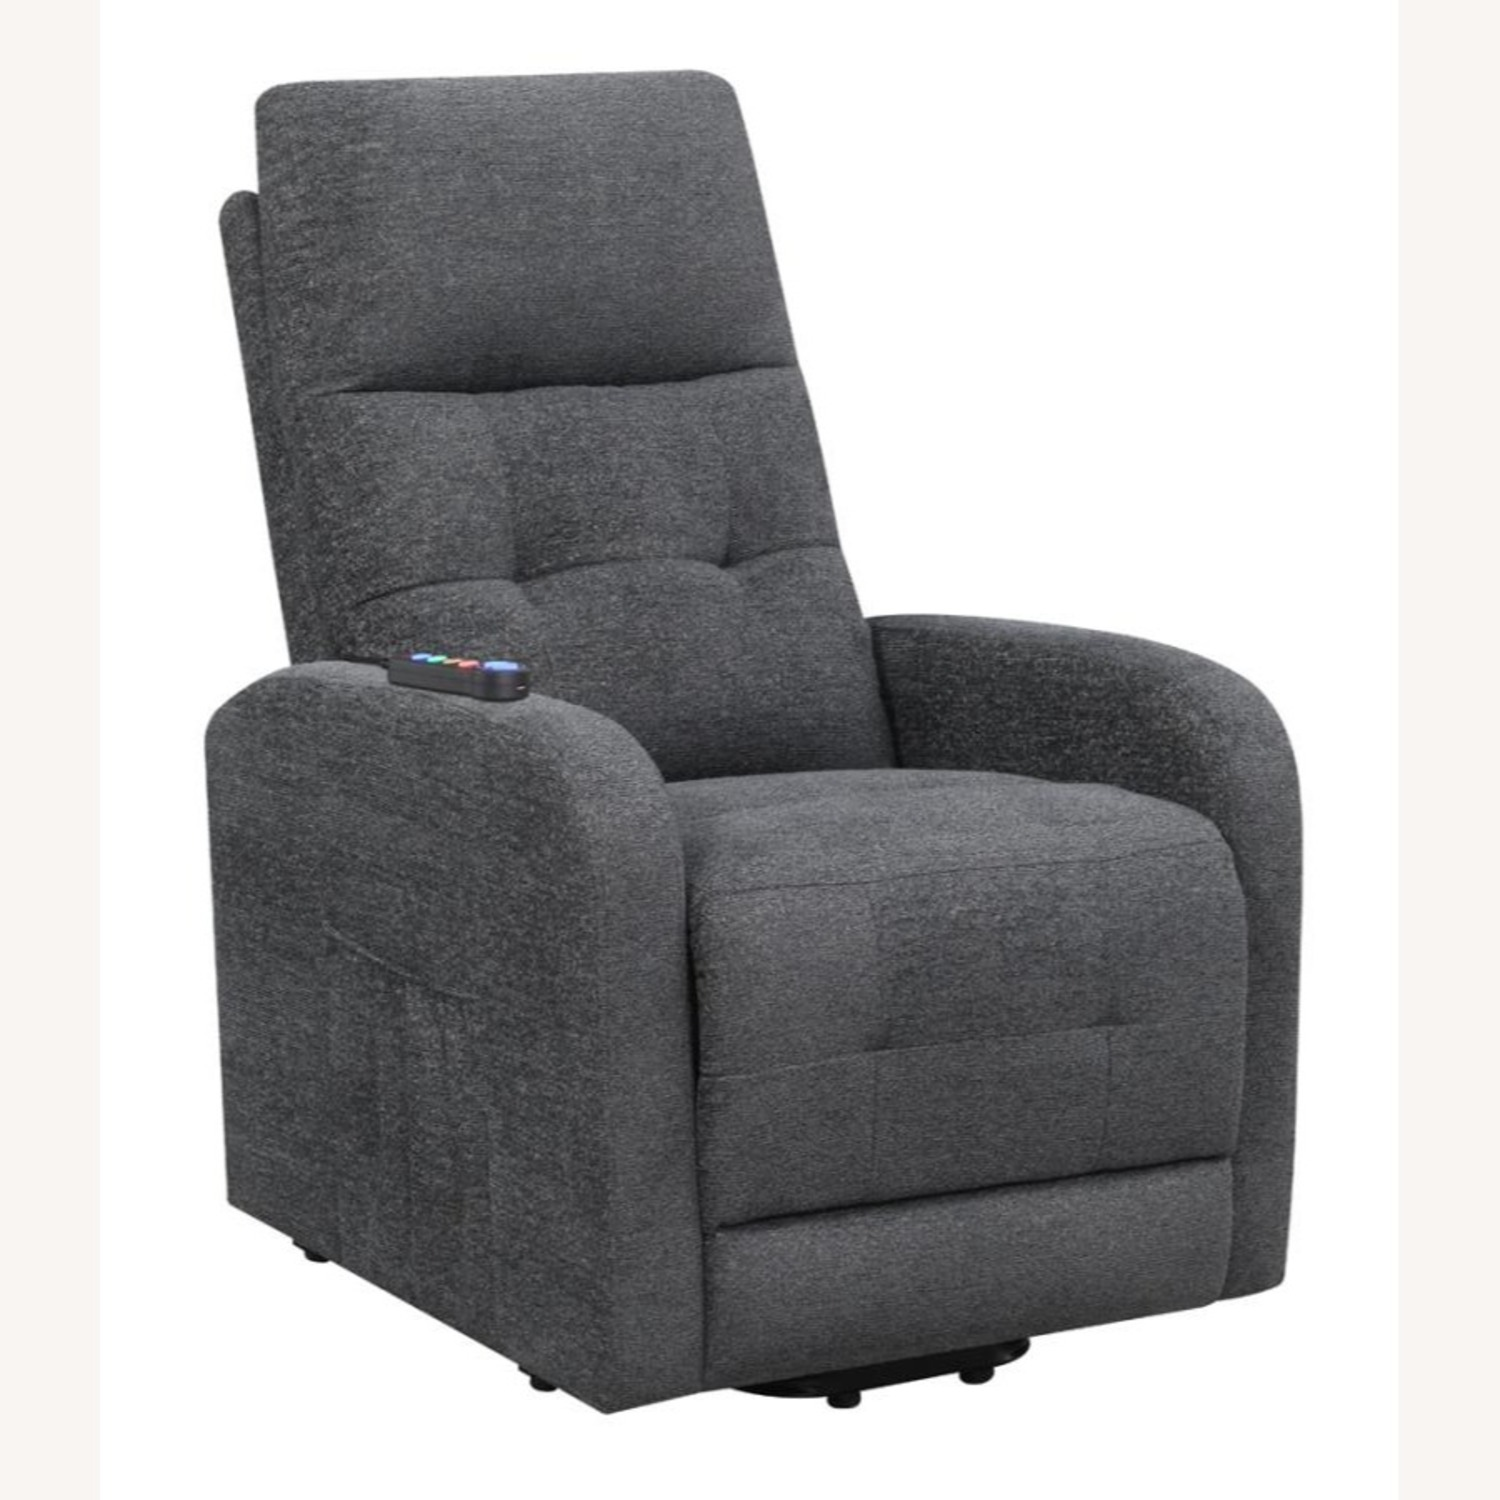 Power Lift Massage Chair In Charcoal Fabric - image-0